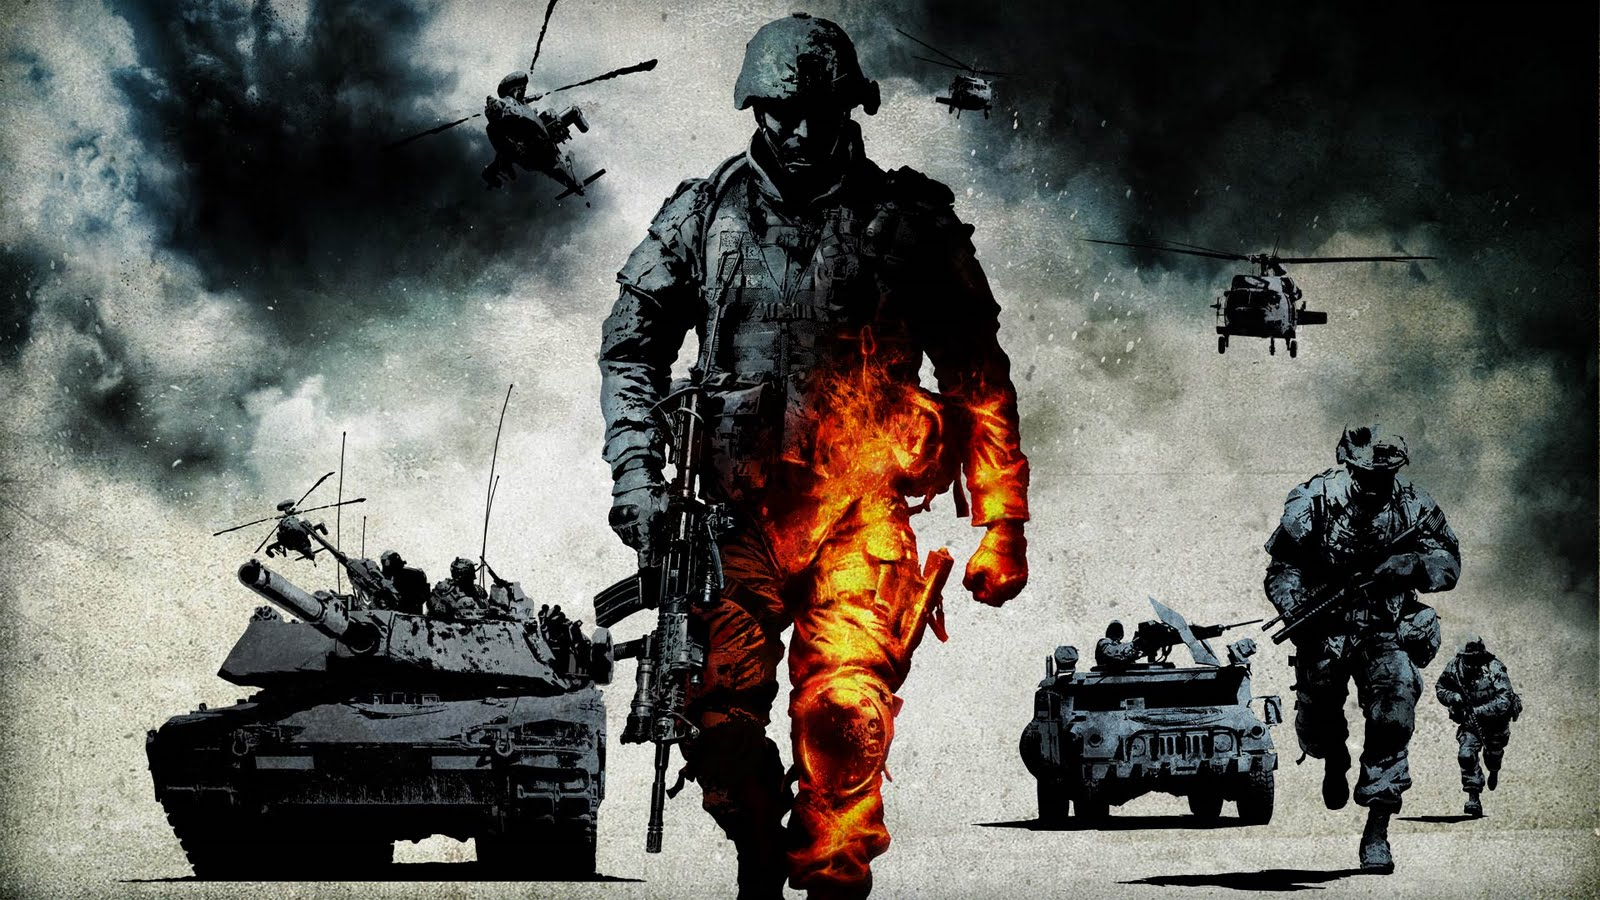 HD Games New Wallpapers You Can See And Download News On Wide Screen We Provide 3d High Resolution